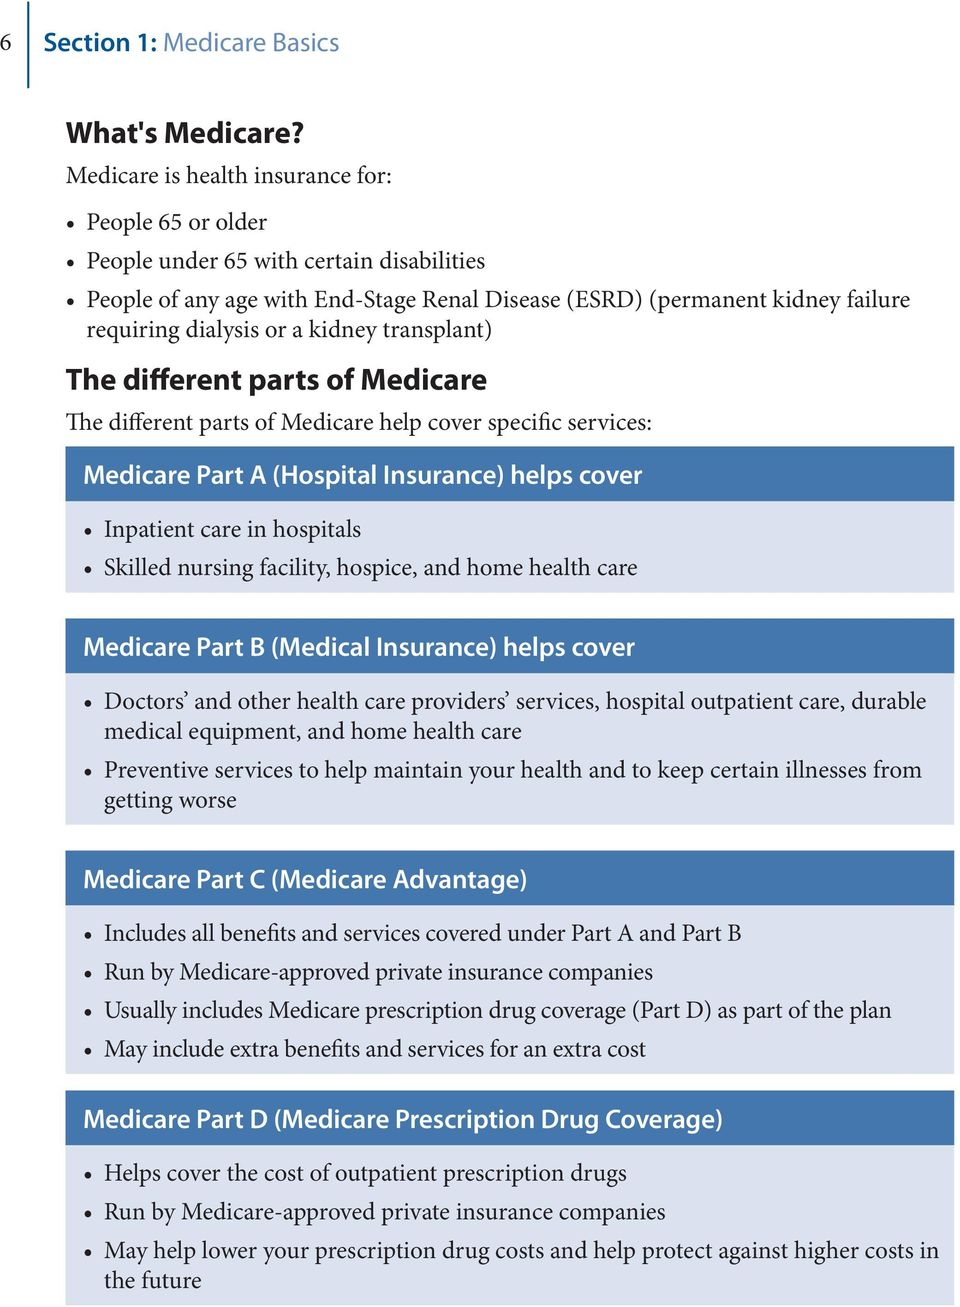 kidney transplant) The different parts of Medicare The different parts of Medicare help cover specific services: Medicare Part A (Hospital Insurance) helps cover Inpatient care in hospitals Skilled